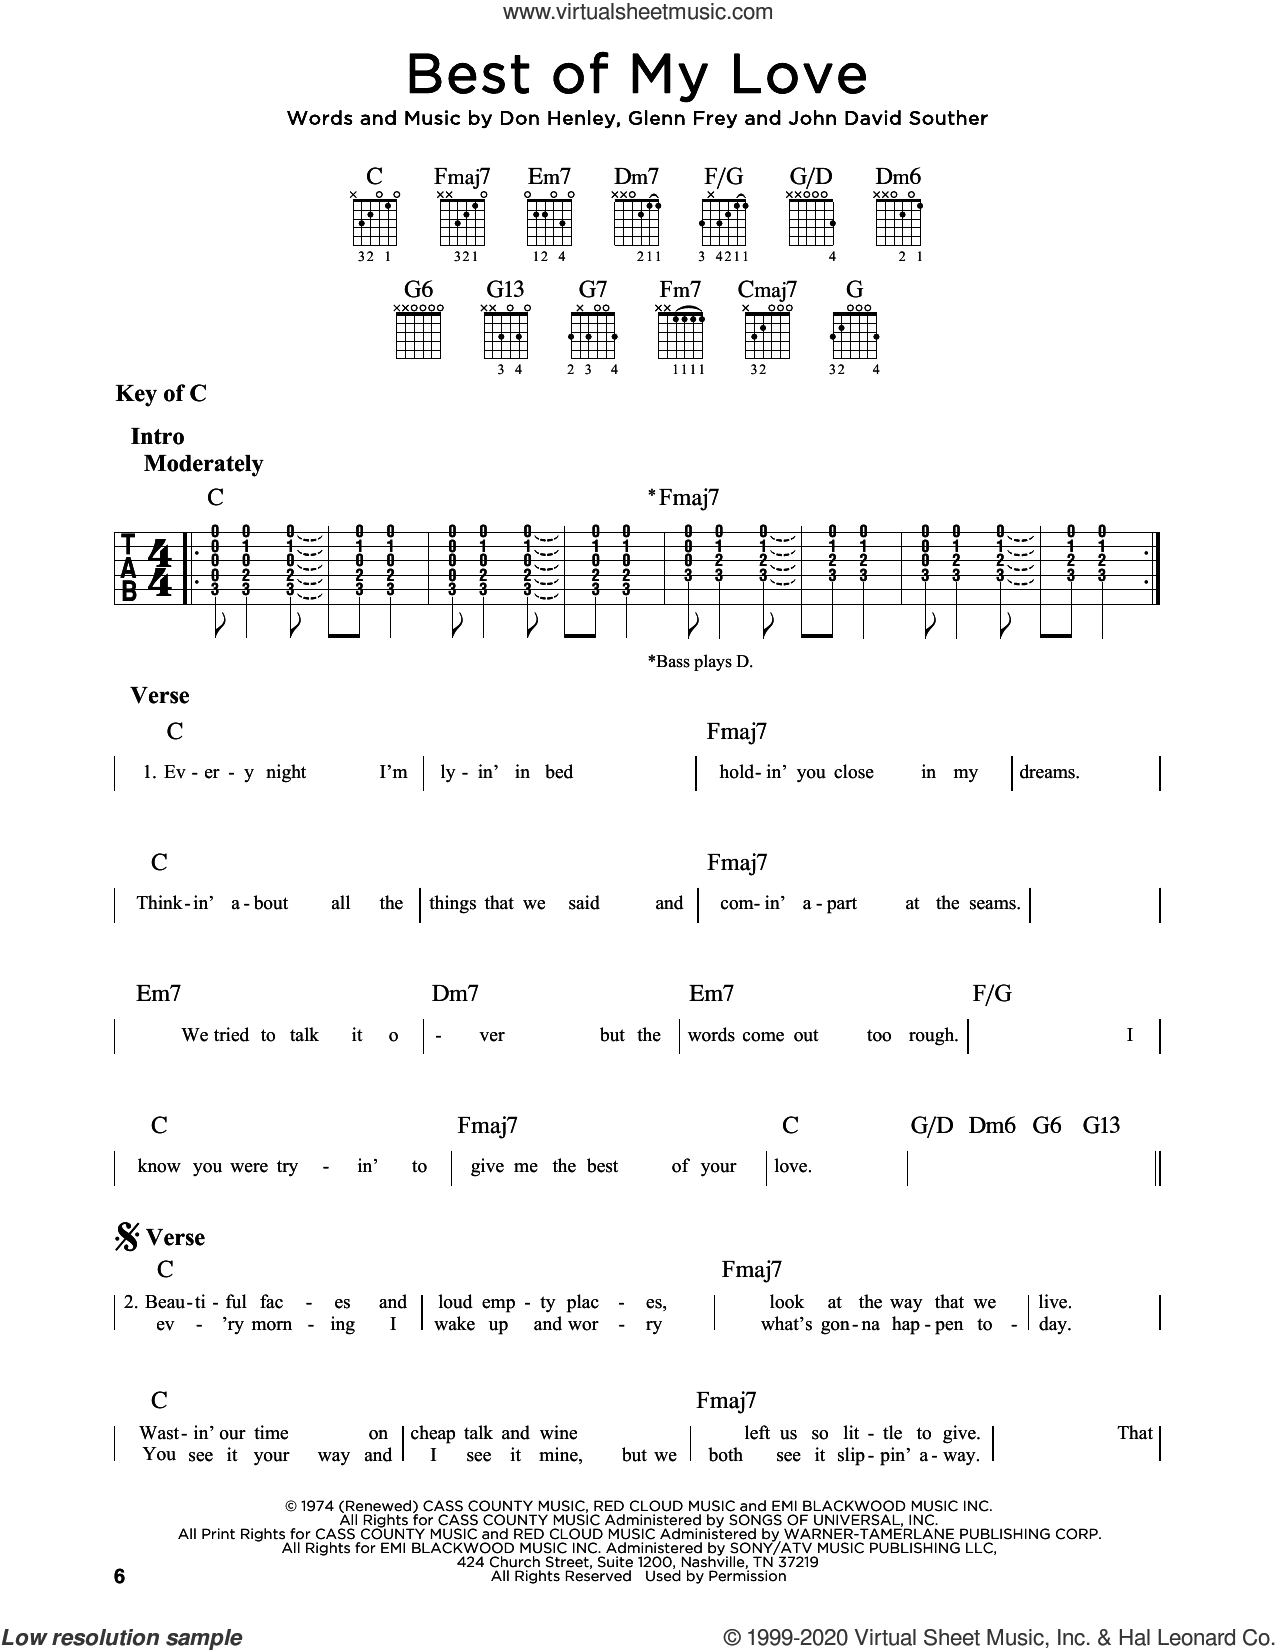 Best Of My Love sheet music for guitar solo (lead sheet) by The Eagles, Don Henley, Glenn Frey and John David Souther, intermediate guitar (lead sheet)